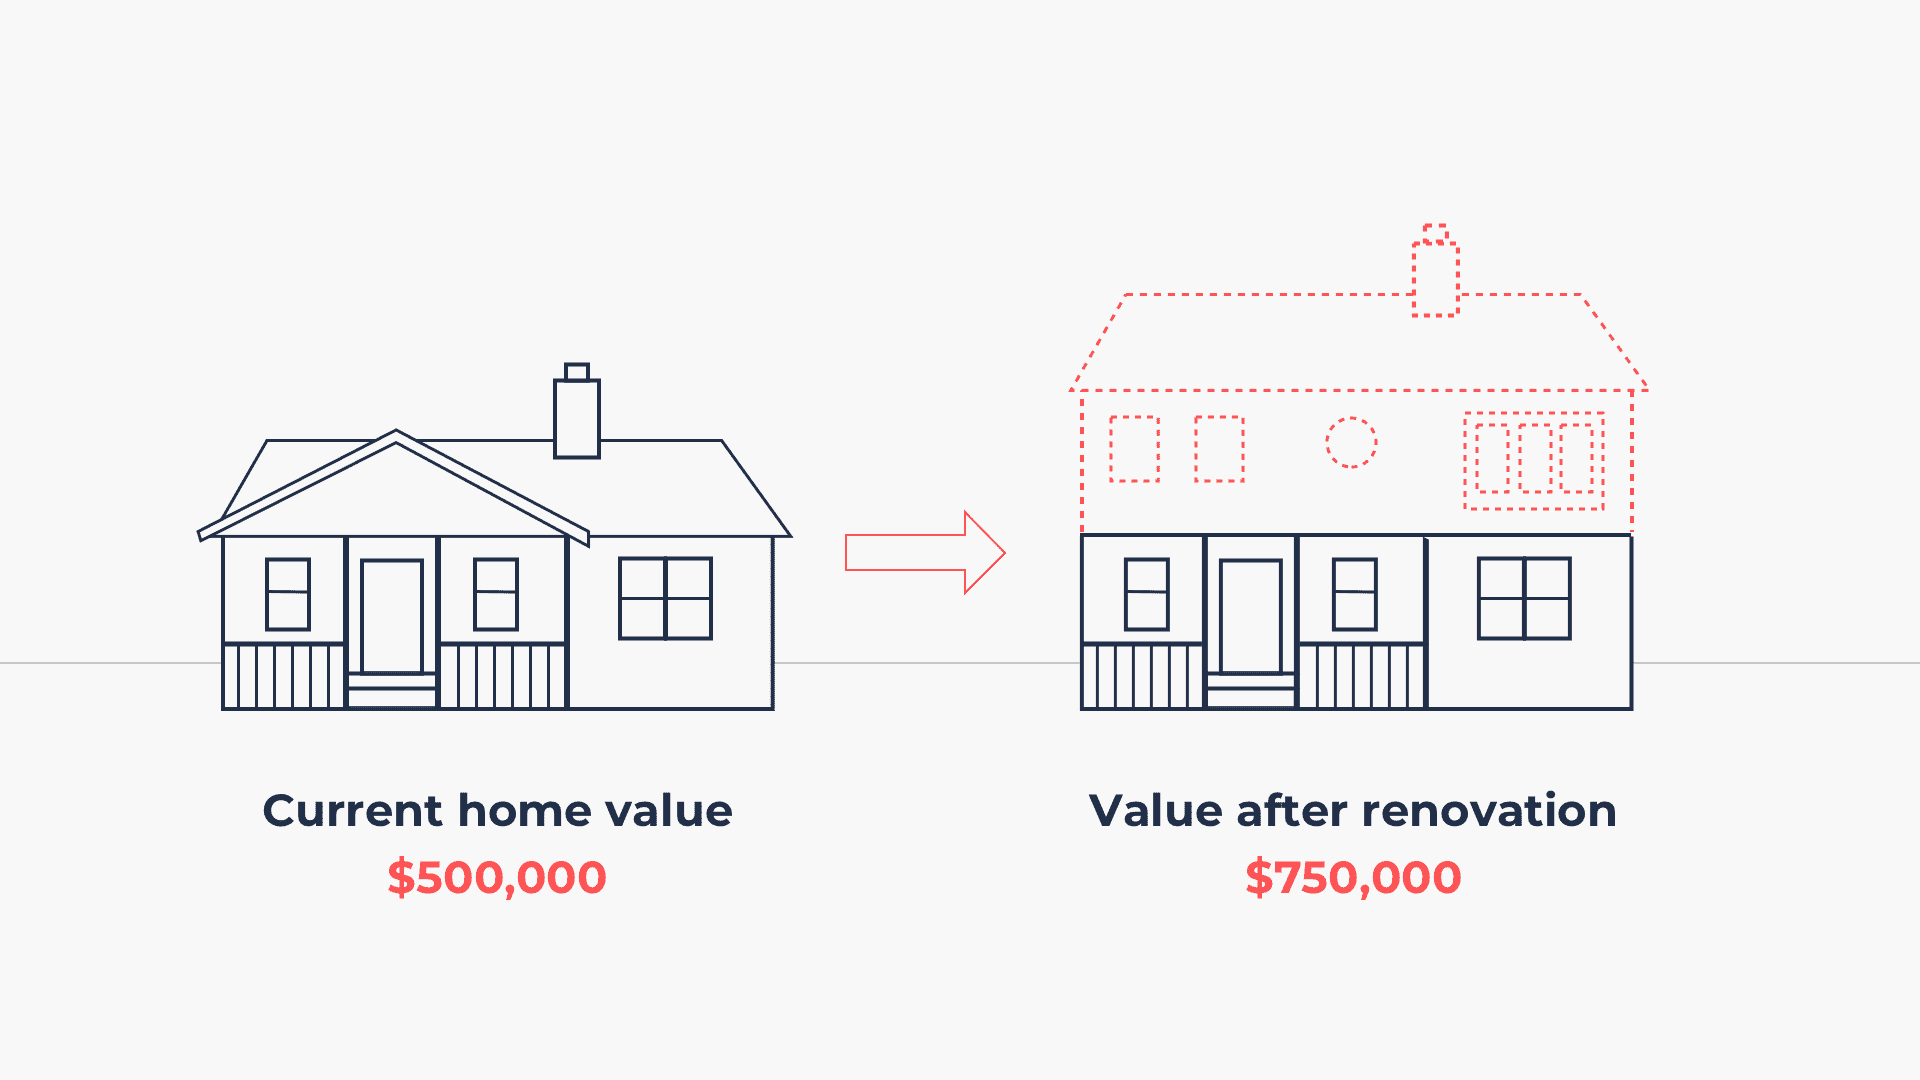 after renovation value